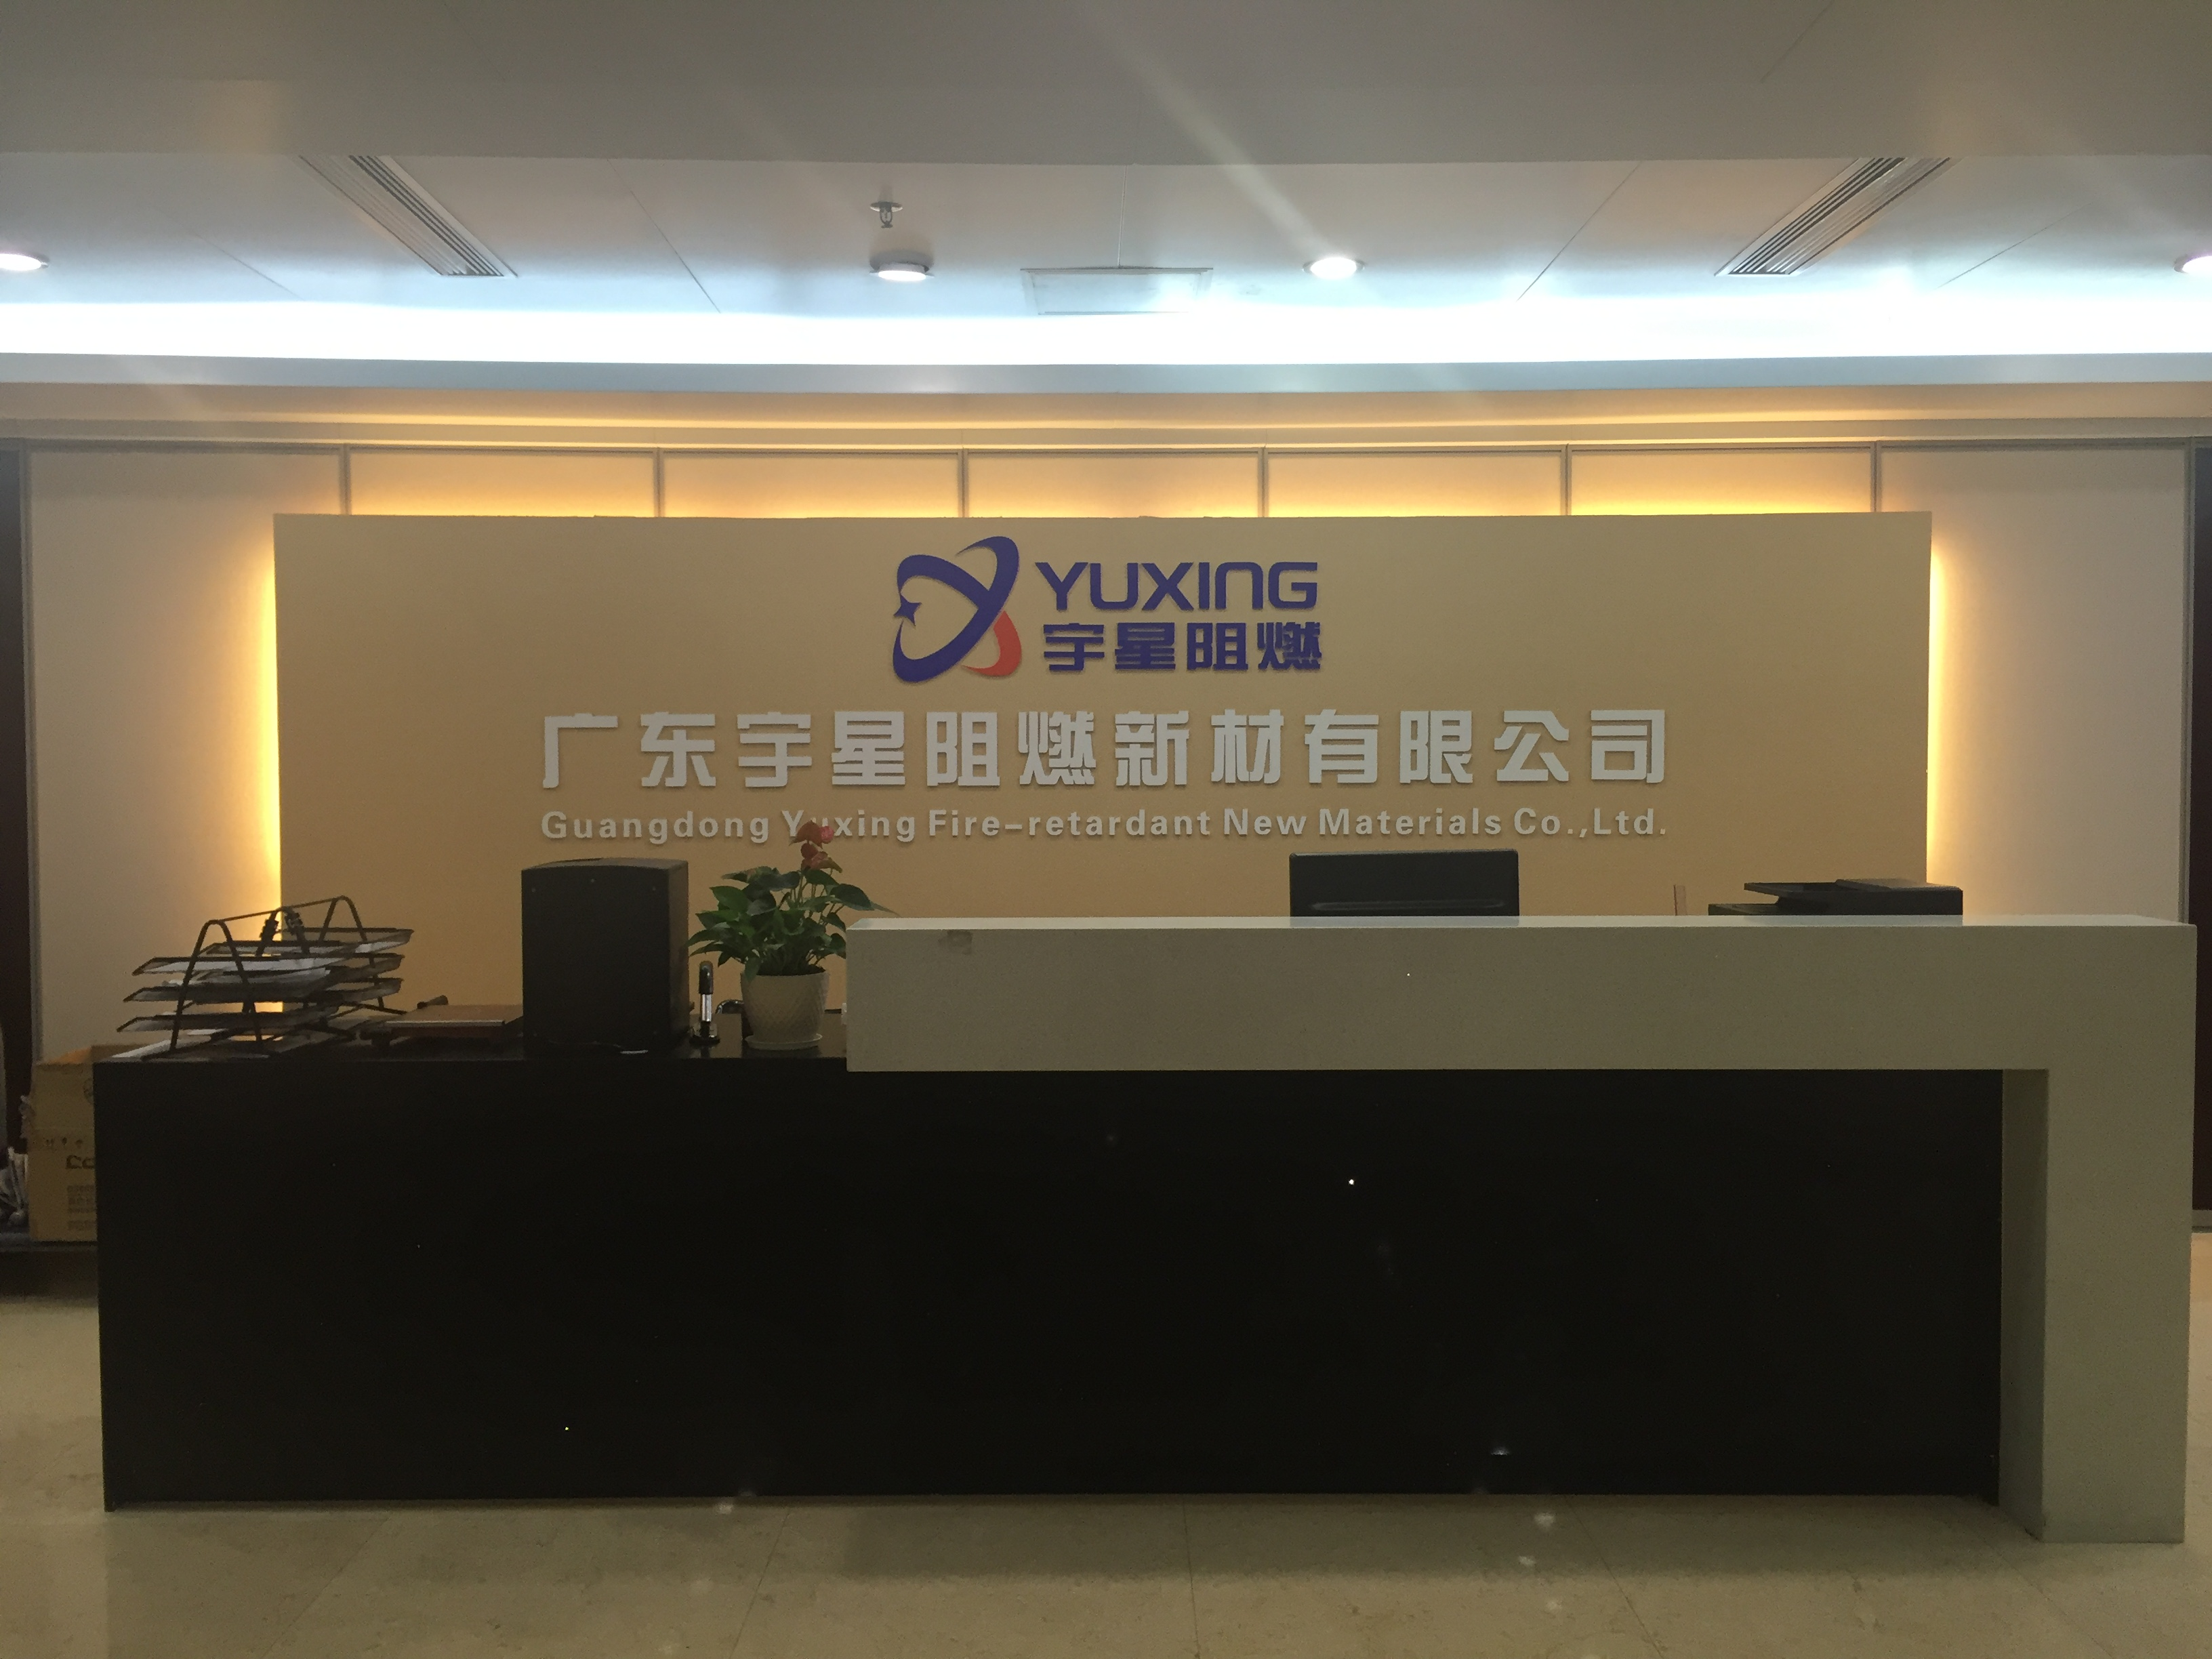 Guangdong Yuxing Fire-retardant New Materials Co.,Ltd. Main Image